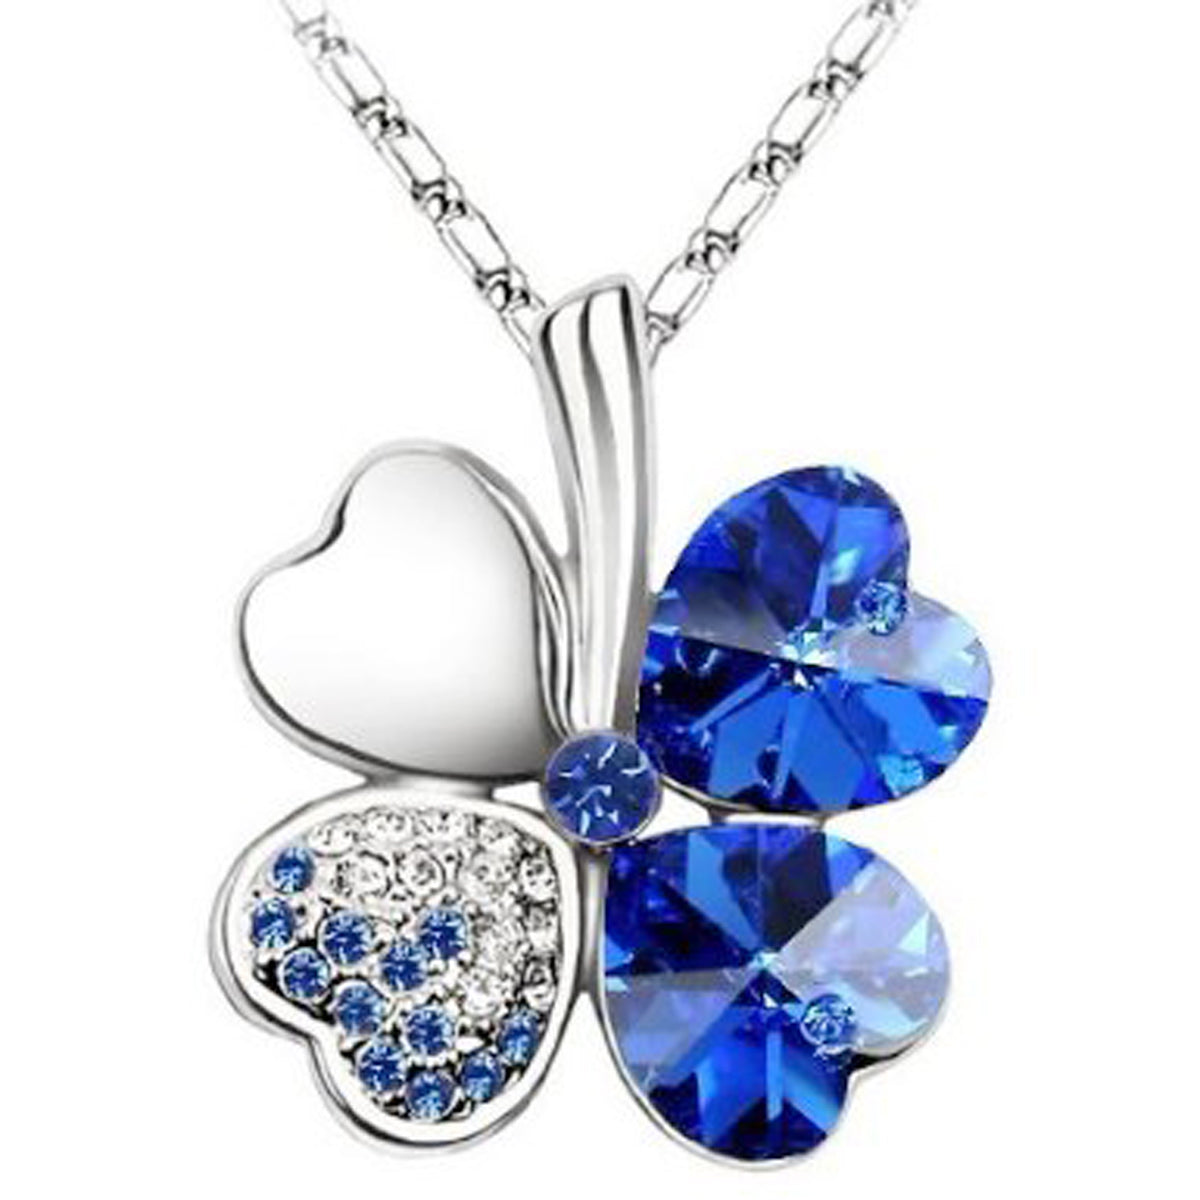 Lucky Sweethearts Gold Plated Swarovski Elements Crystal Heart Shaped Four Leaf Clover Pendant Necklace and Earrings Jewelry Set (Royal Blue)